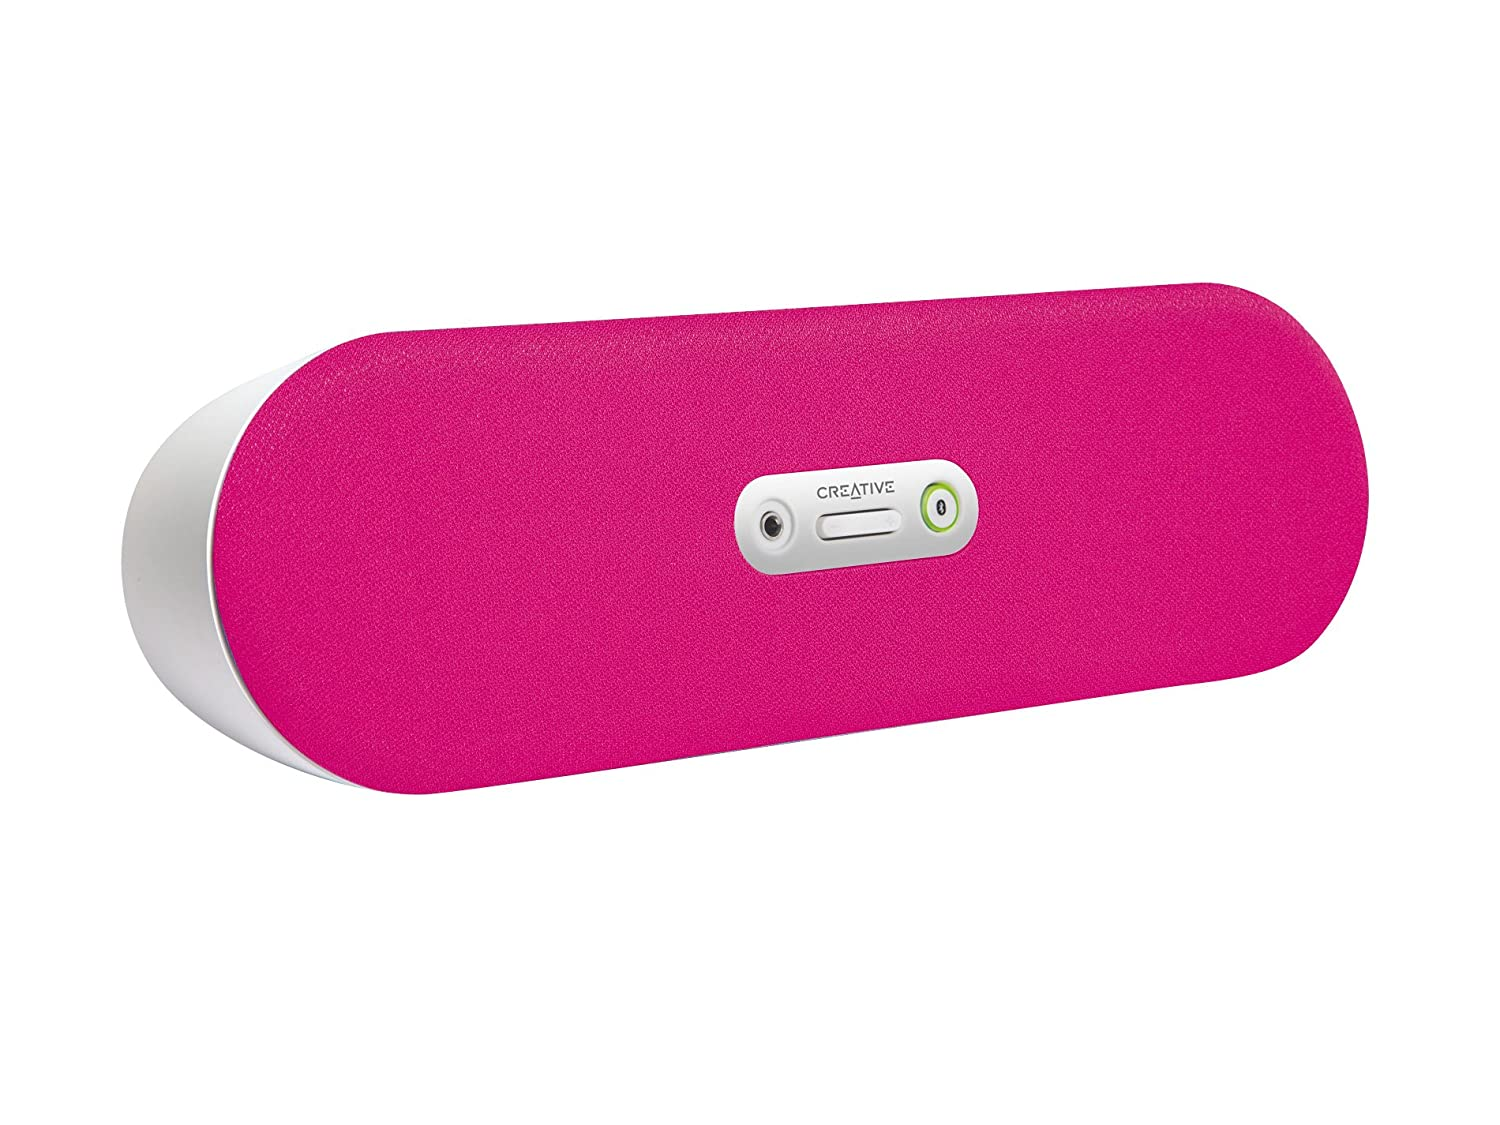 speakers pink. creative d80 bluetooth wireless speaker with aux-in - pink (discontinued by manufacturer): amazon.co.uk: hi-fi \u0026 speakers e